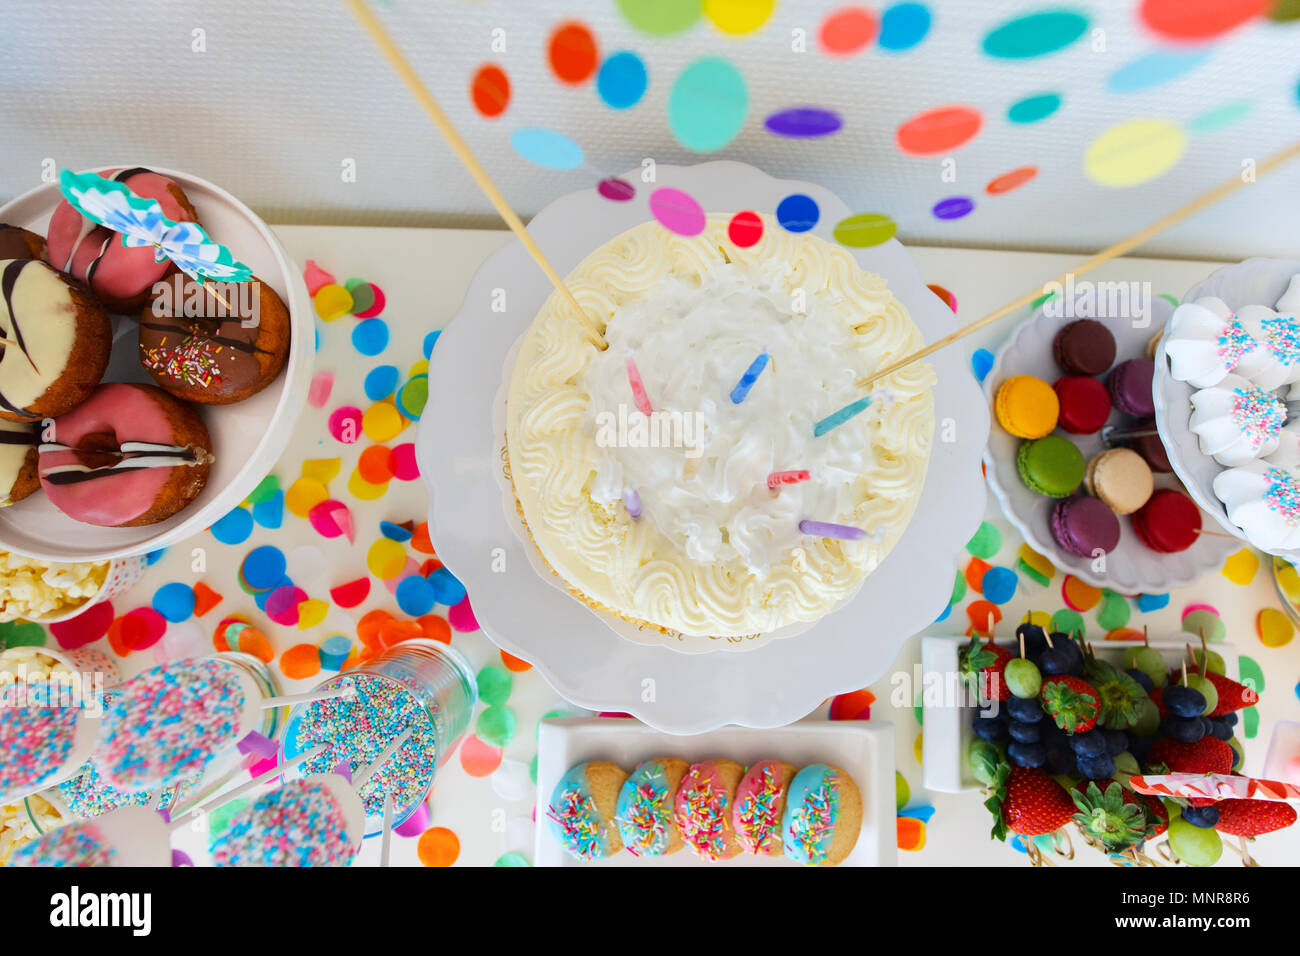 Cake, candies, marshmallows, cakepops, fruits and other sweets on dessert table at kids birthday party - Stock Image